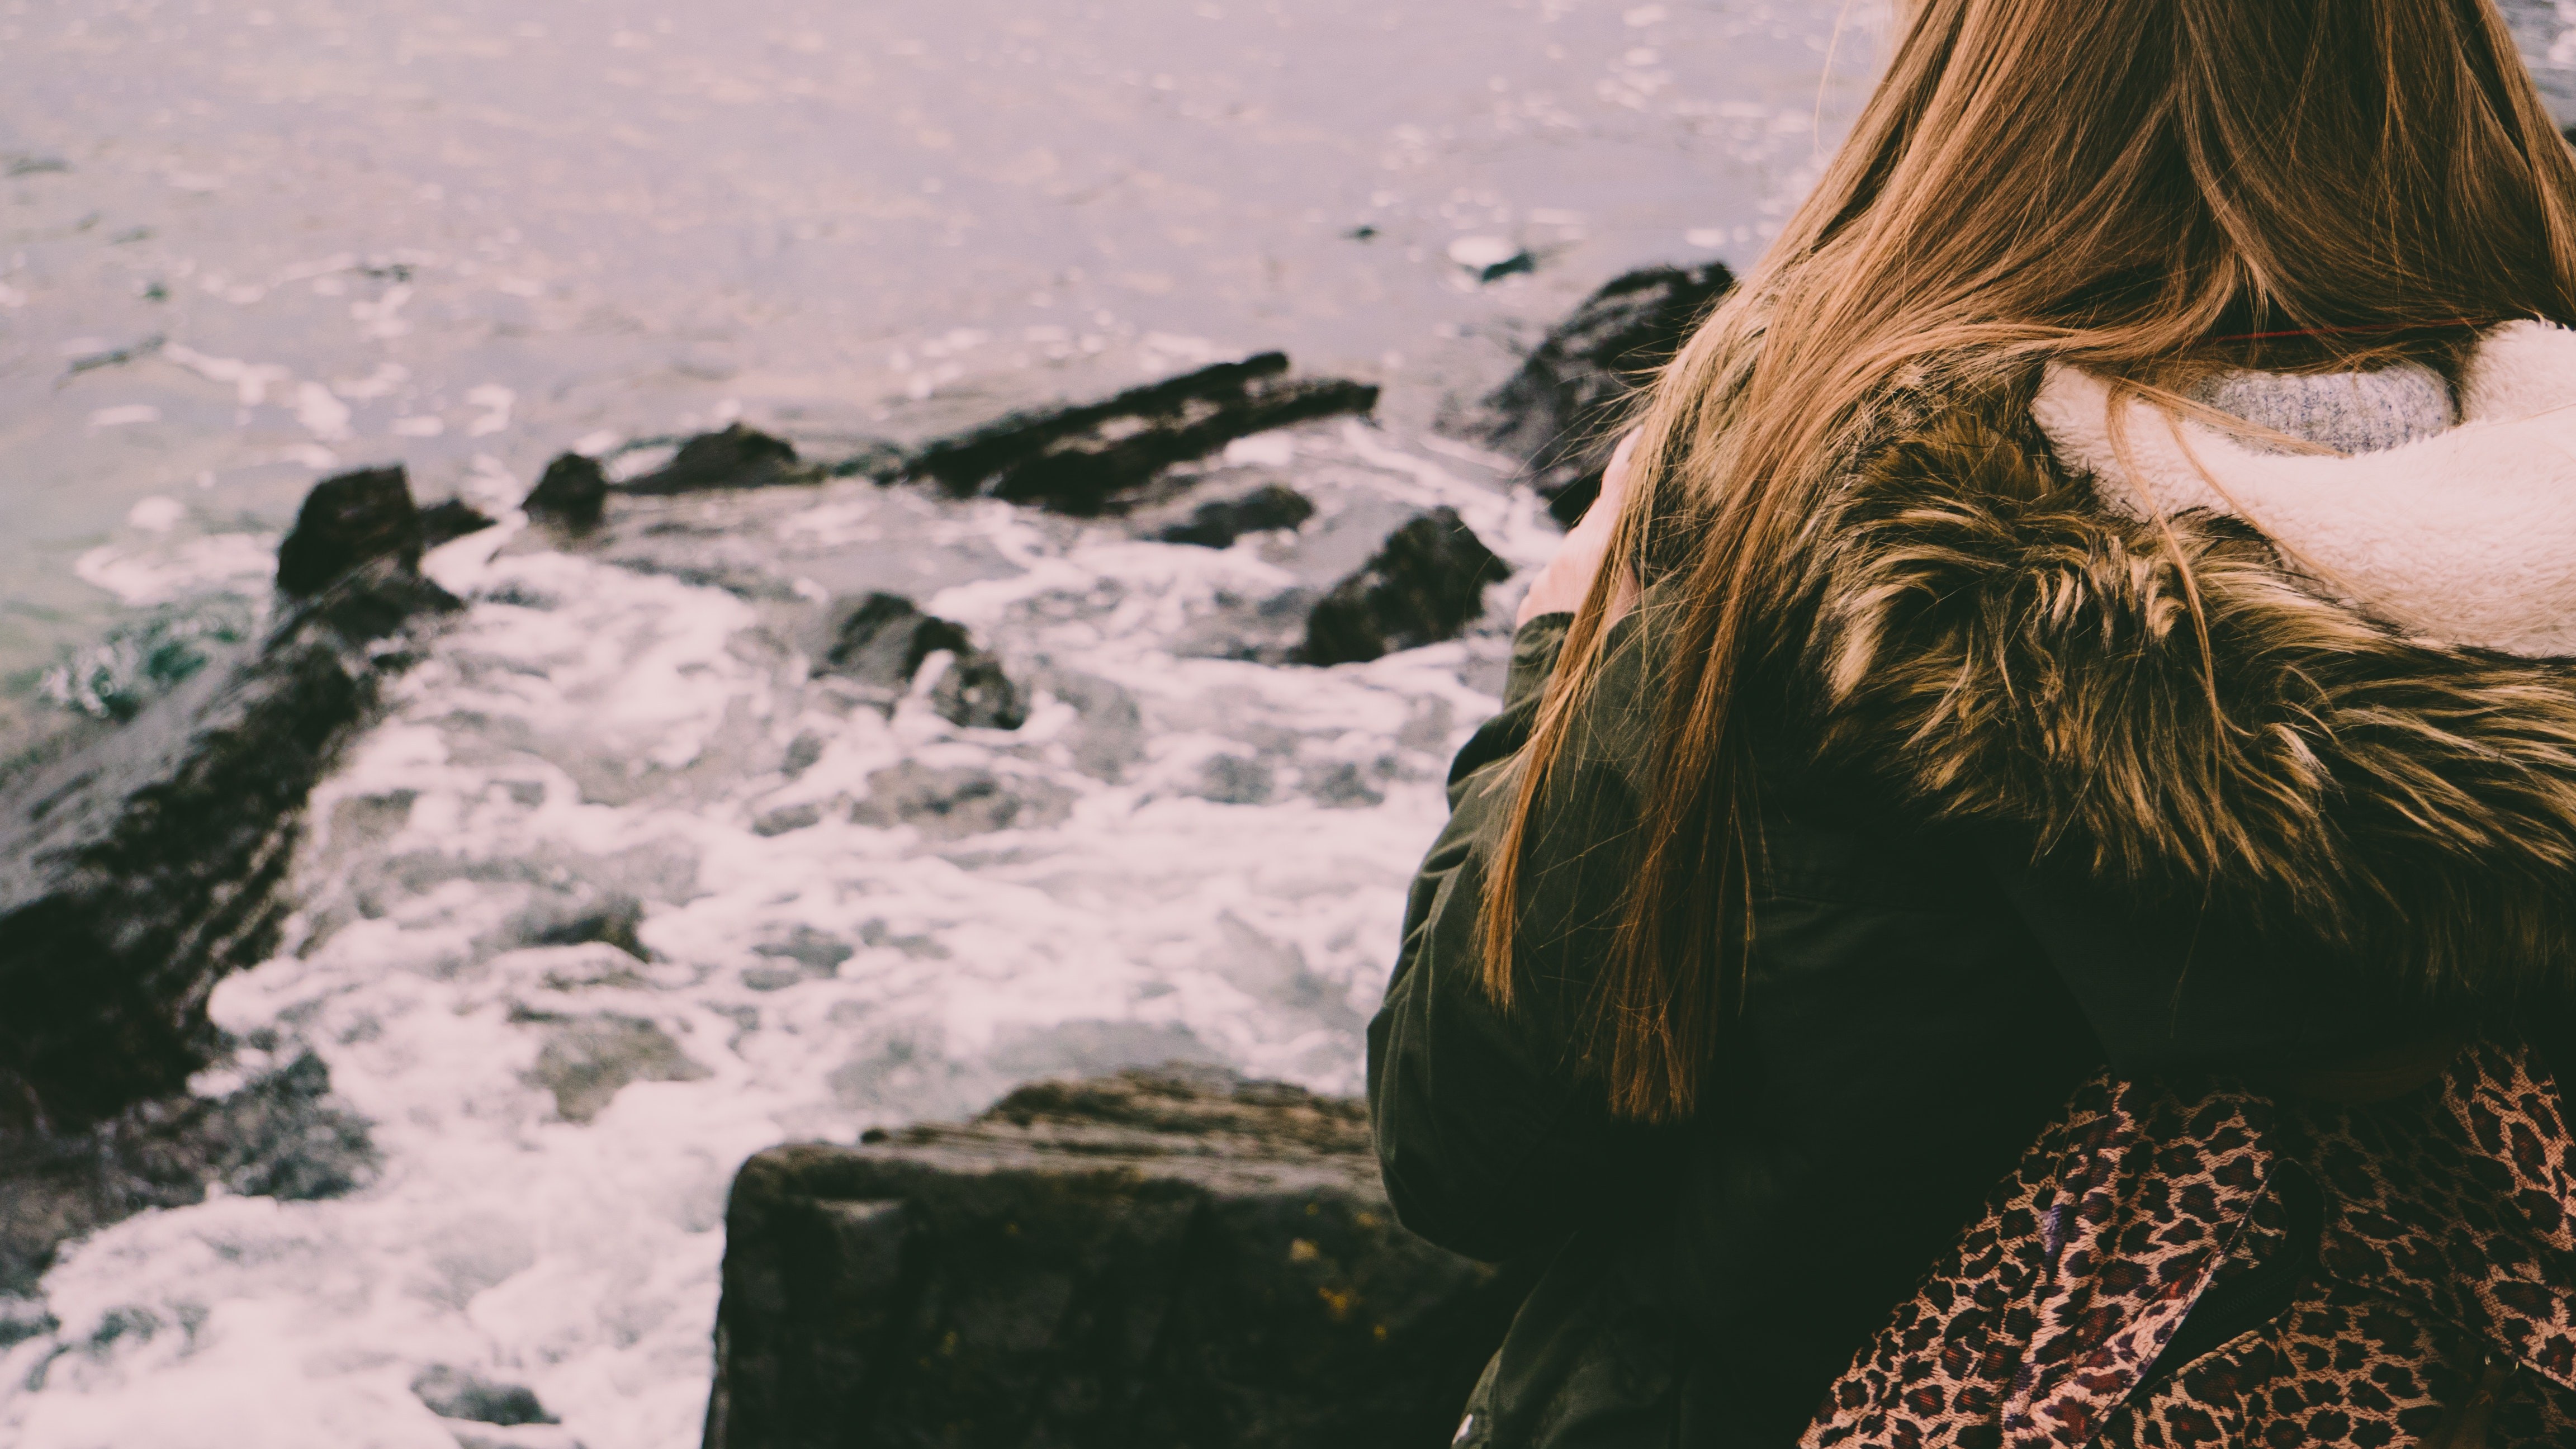 Woman Looking at the Water, Beach, Cold, Daylight, Ocean, HQ Photo